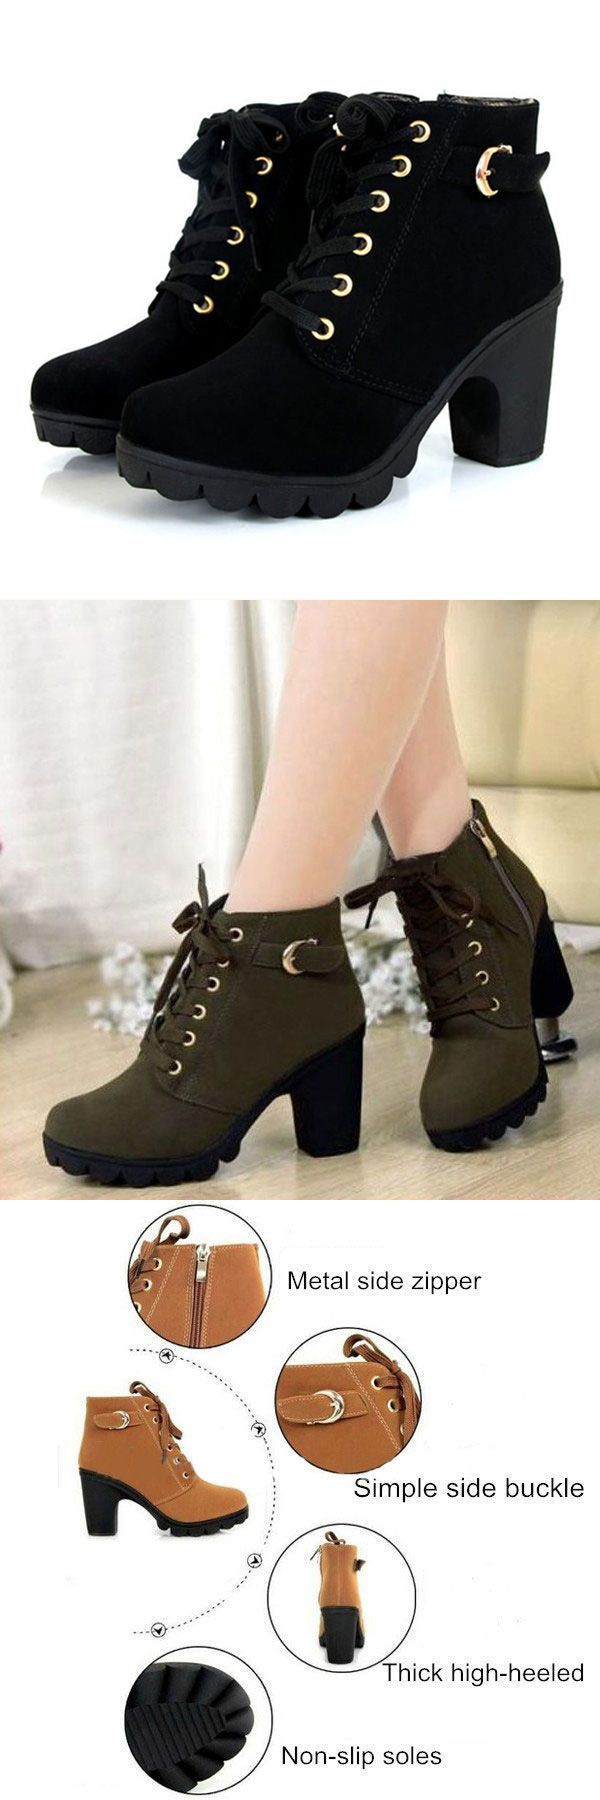 Women girl high top heel ankle boots winter pumps lace up buckle suede shoes boots target #boots ##7 #serum #at #target #boots #0707 #g #boots #motocross #n #boots #snowboard